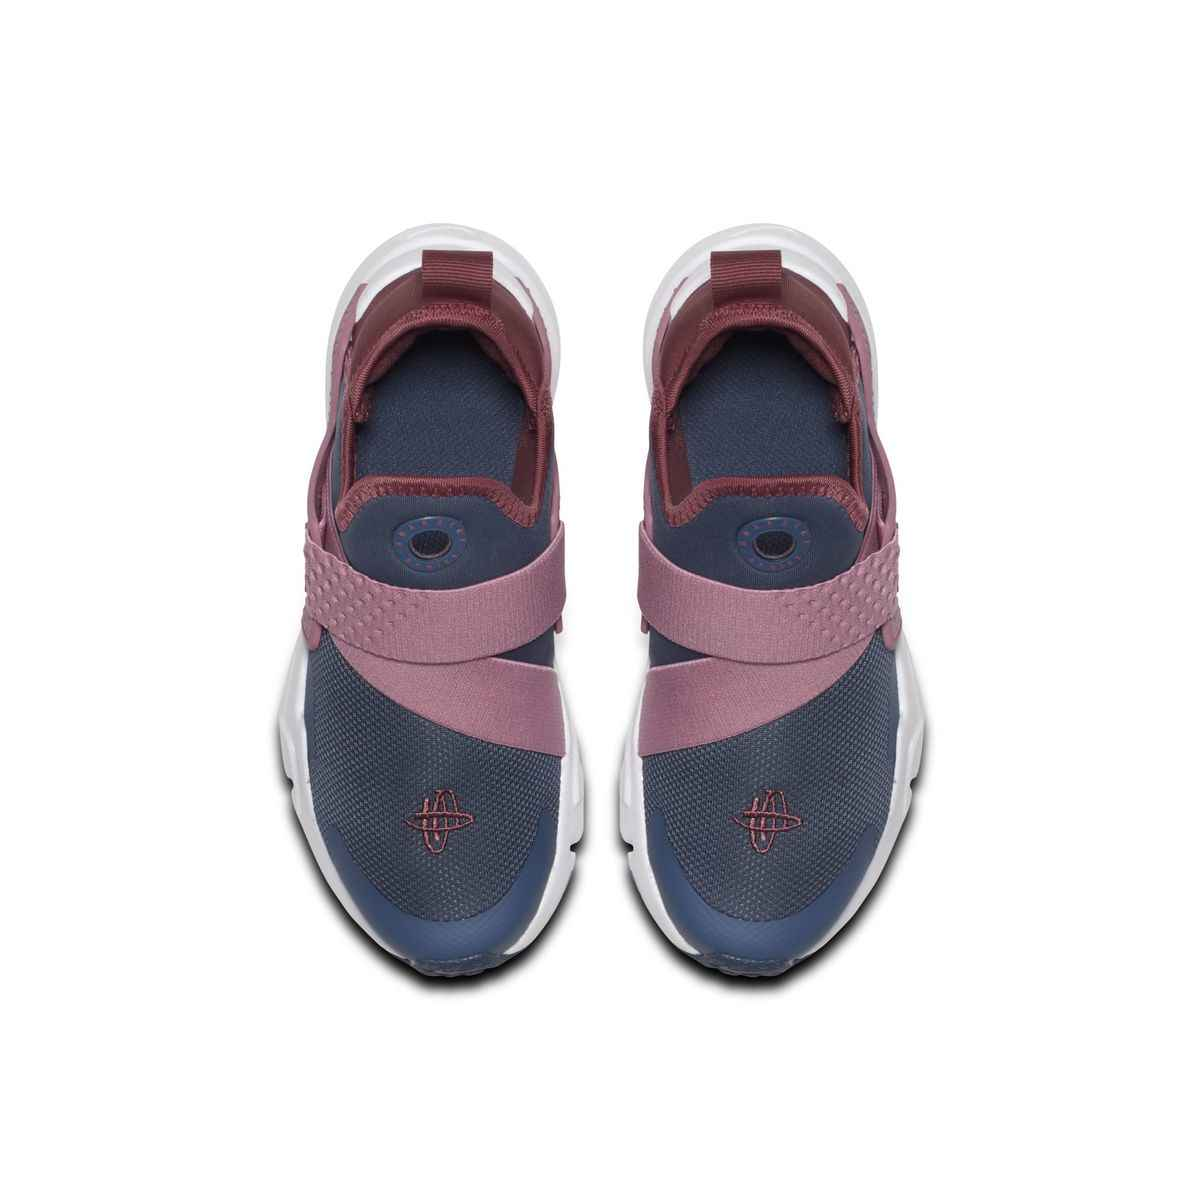 9d9d56c6c042 ... NIKE Kids HUARACHE EXTREME PS Toddler Motion Children s Shoes Outdoor  Casual Running Sneakers AH7826 ...